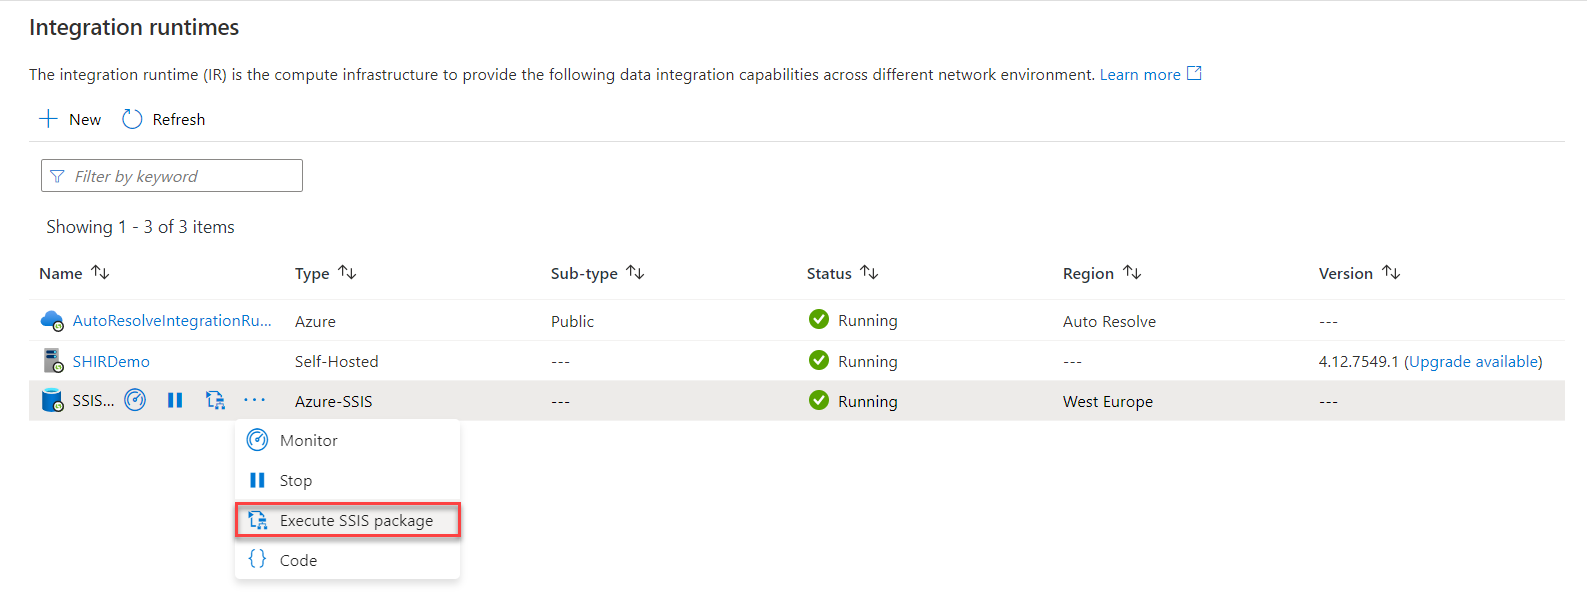 Execute SSIS package option